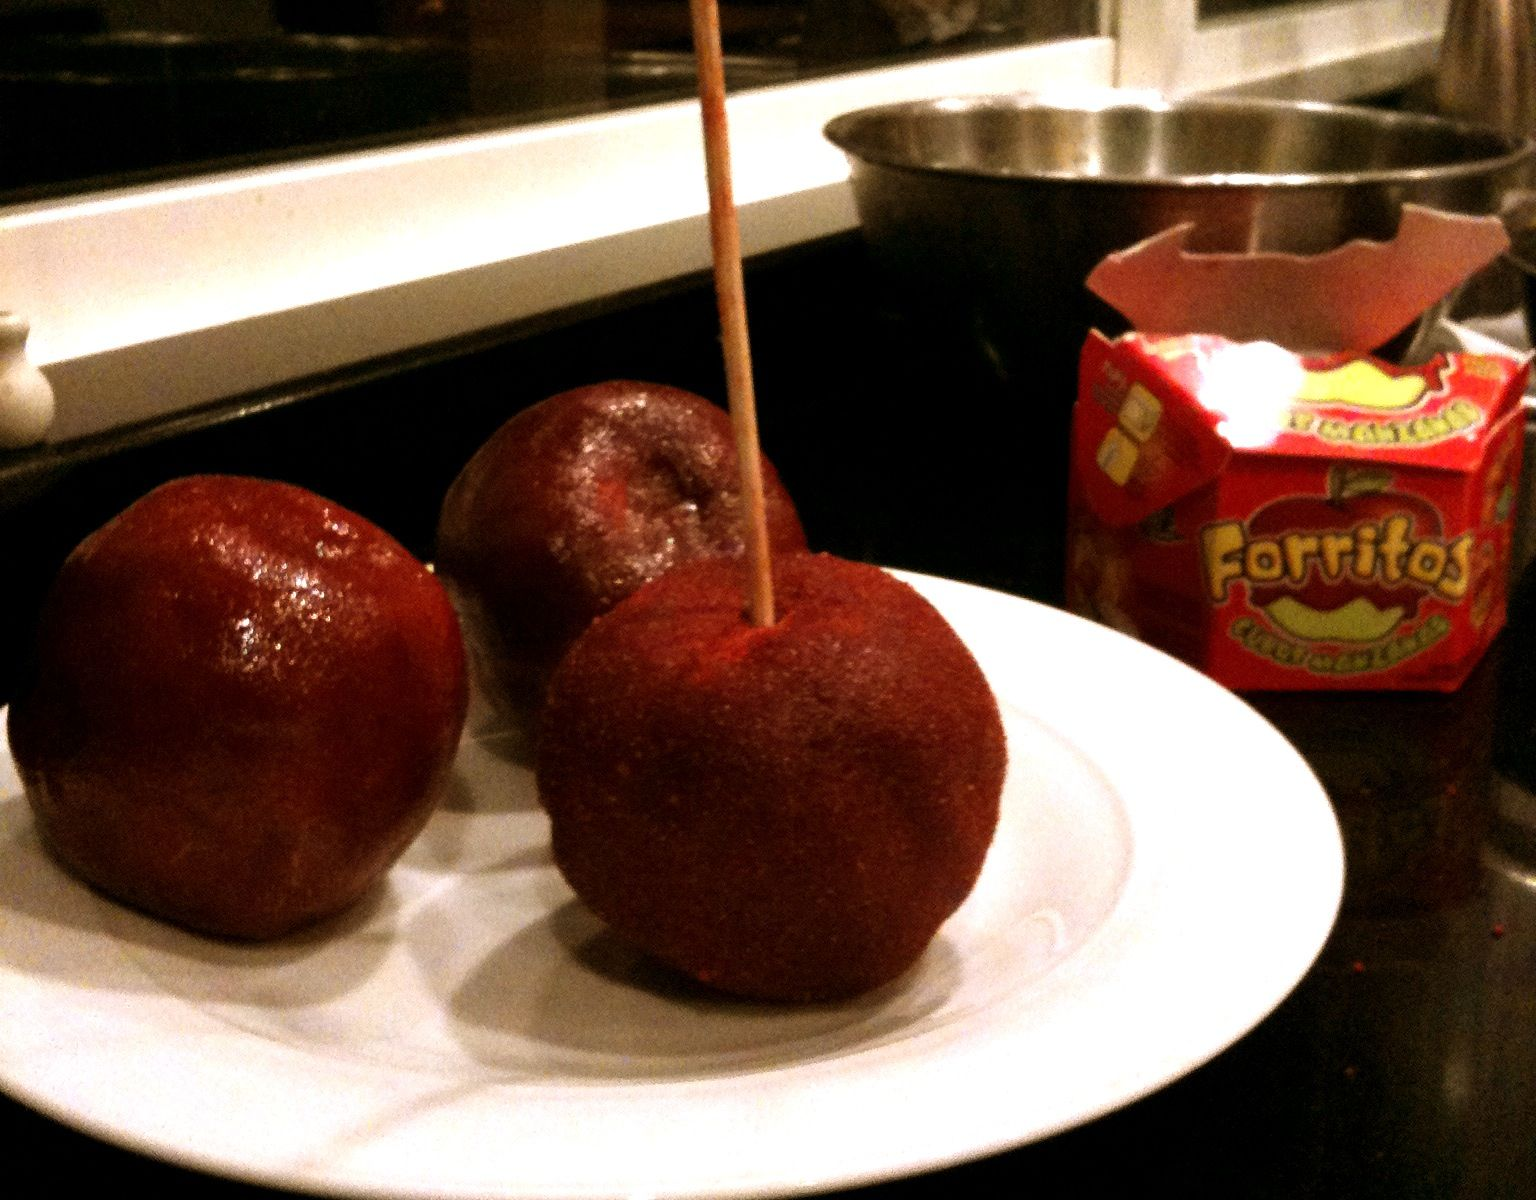 Granny smith apples covered with tamarind and chili candy